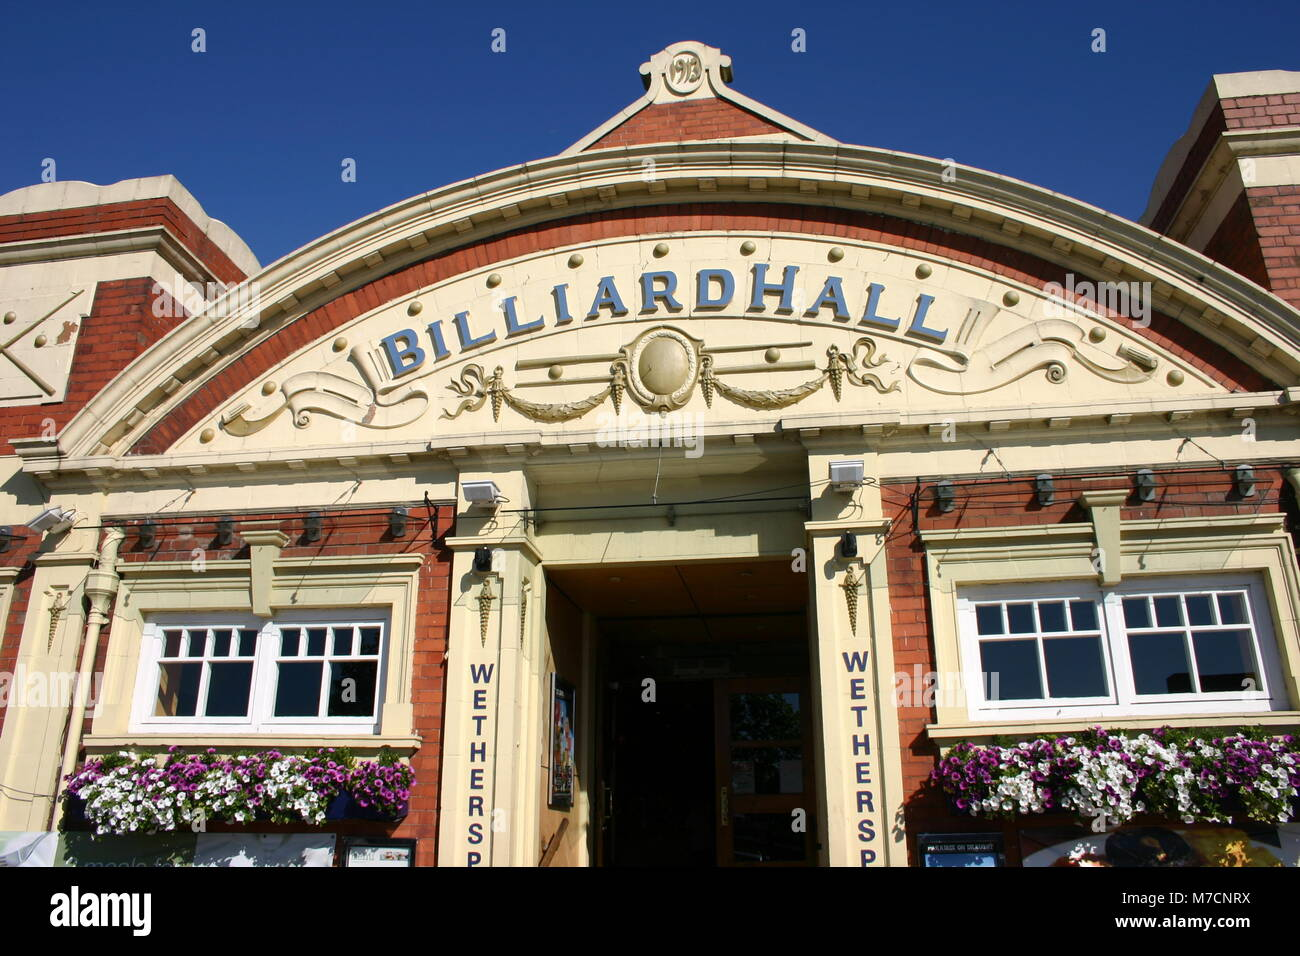 Billiard hall, built 1913 for Willie Holt billiard table manufacturer, now a Weatherspoons pub, West Bromwich - Stock Image